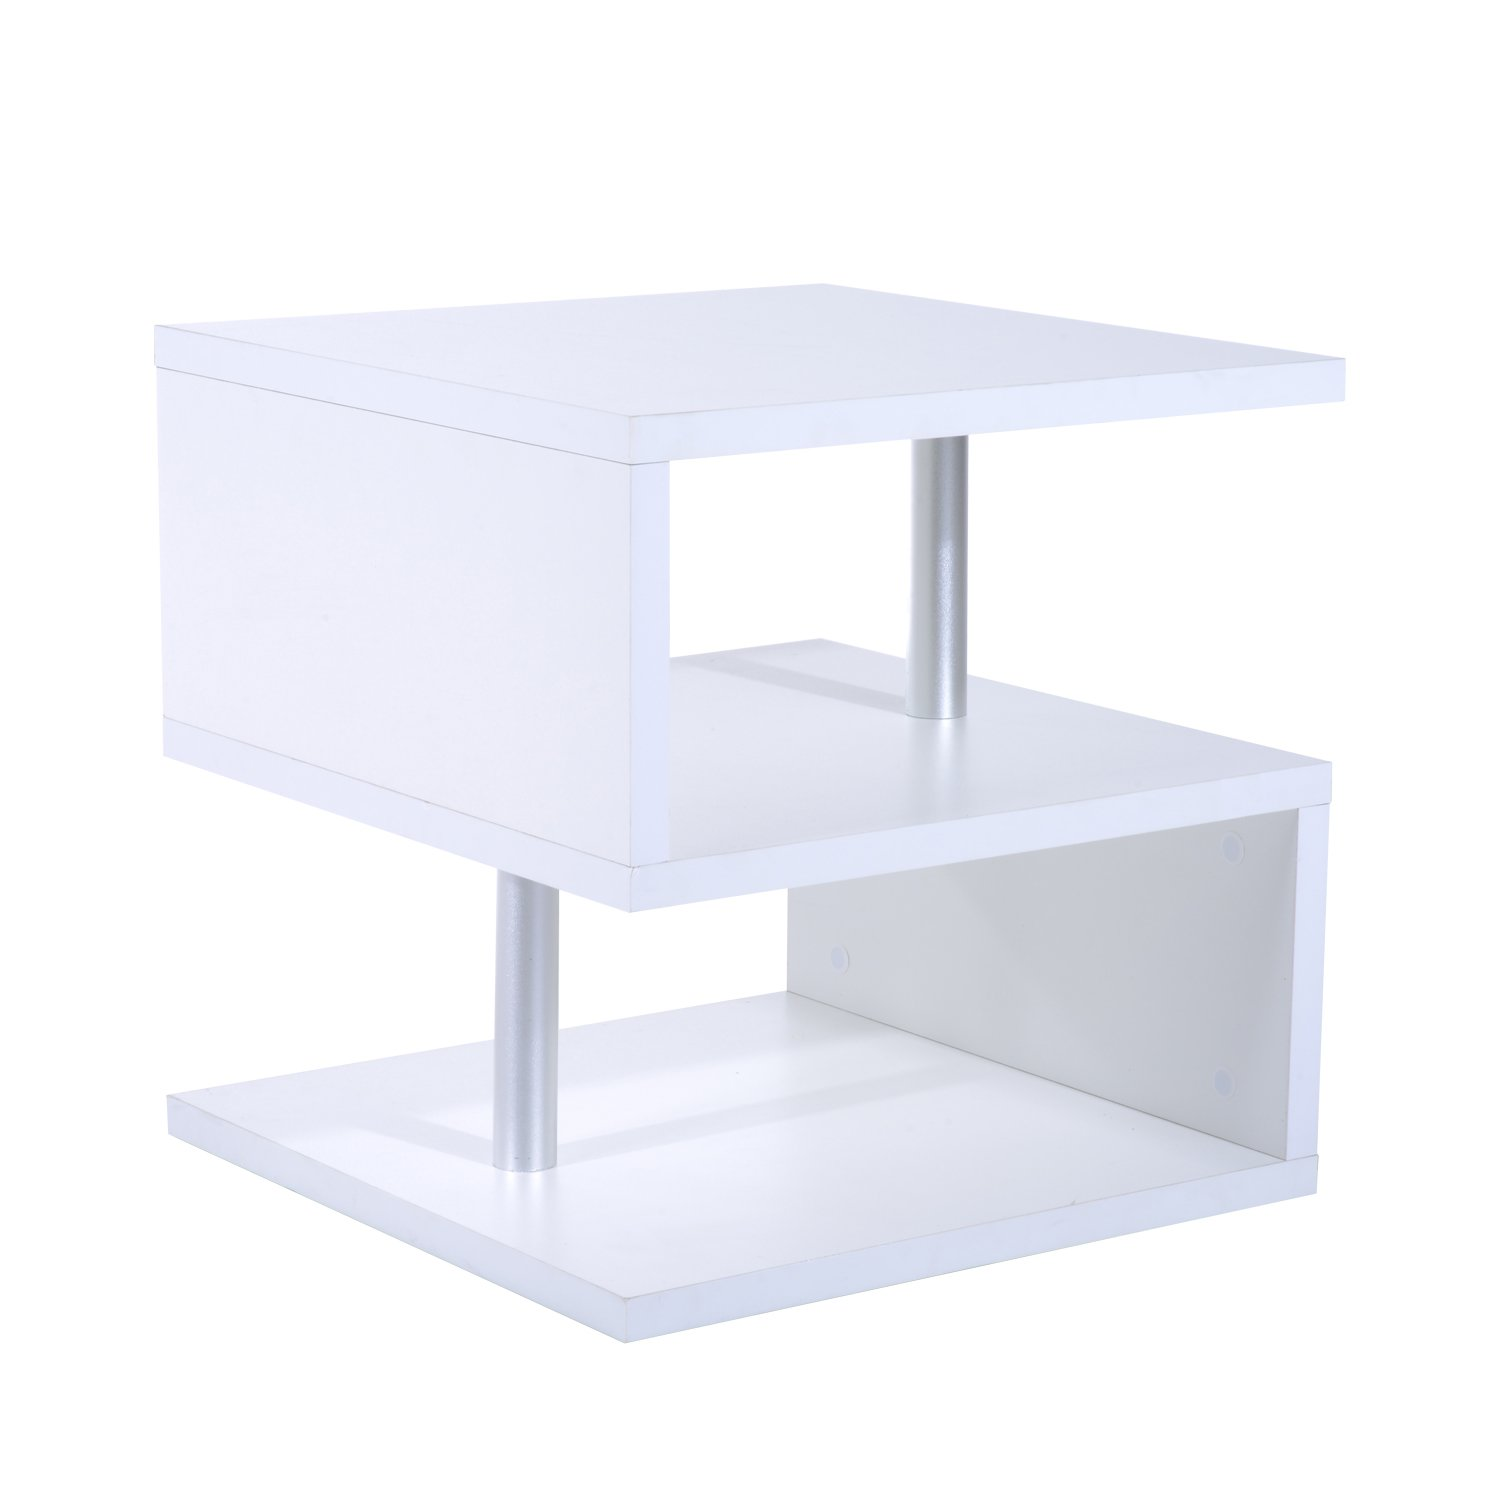 HOMCOM Wooden S Shape End Table 3 Tier Storage Shelves Organizer Living Room Coffee Side Table Desk White Aosom Canada